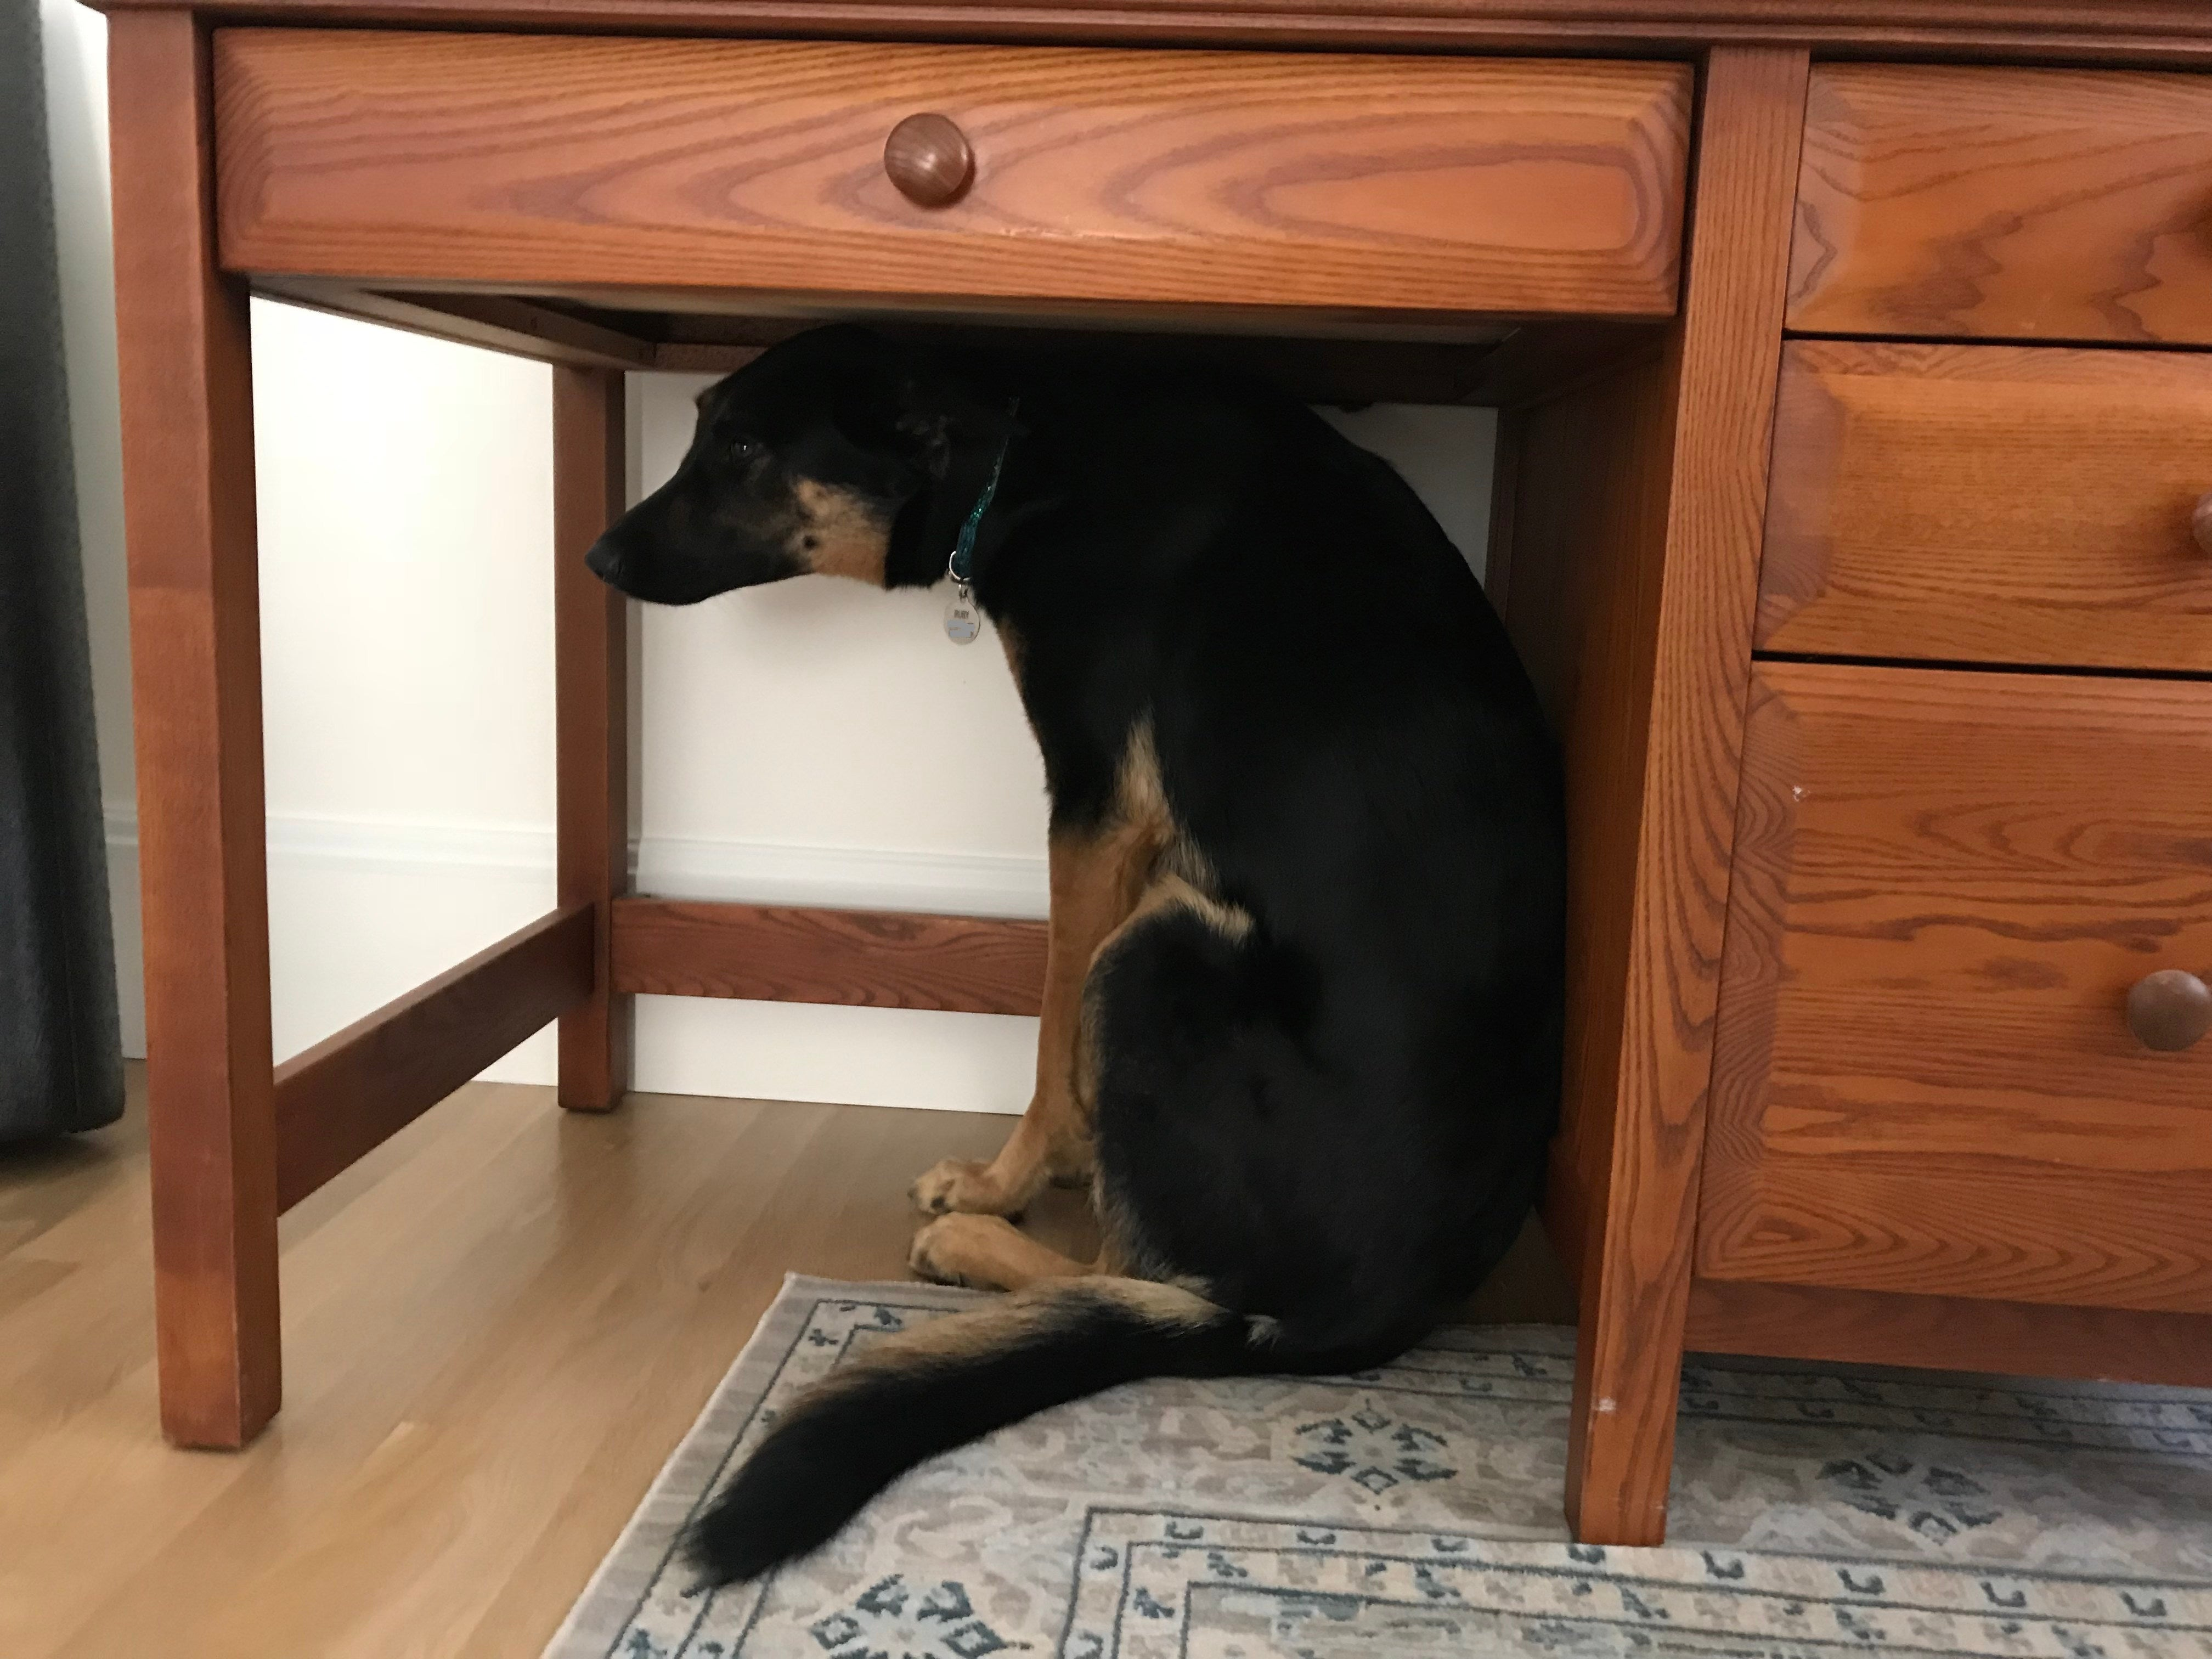 A large dog under a small desk.